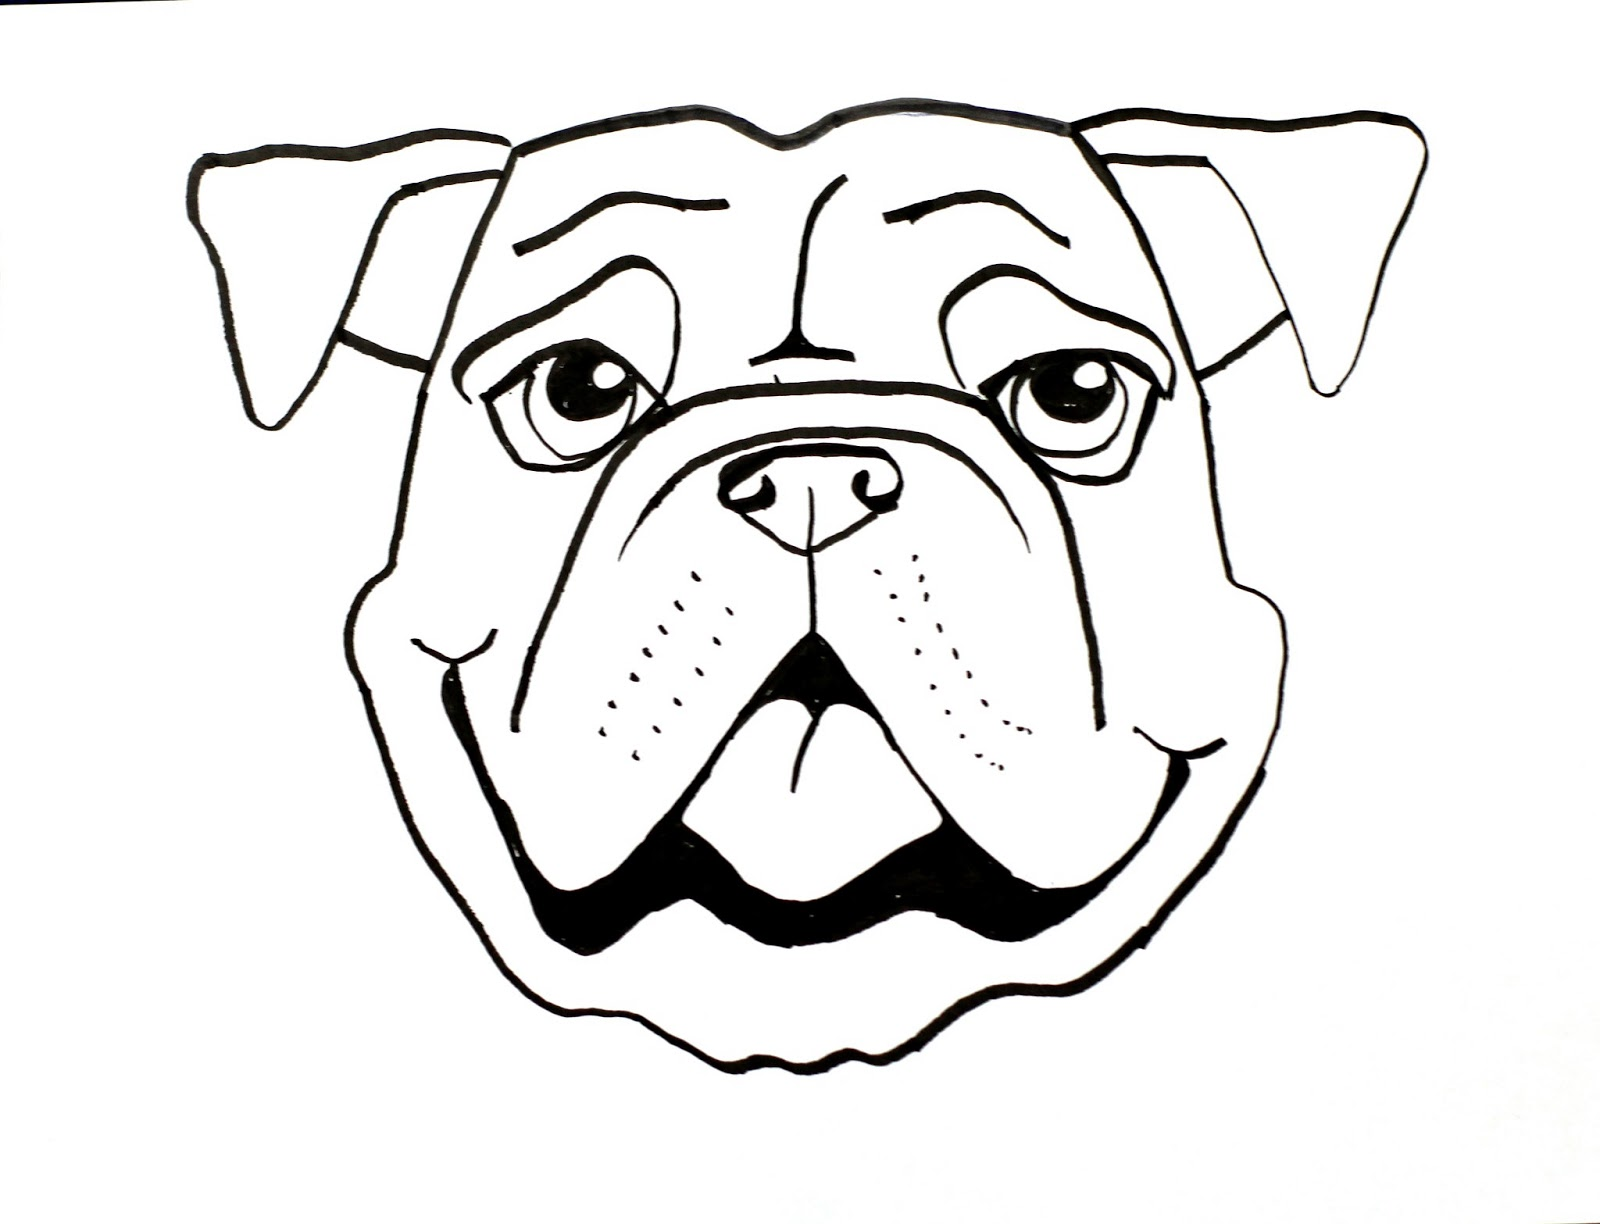 Pug Face Line Drawing : Smart class bull dog draw a long